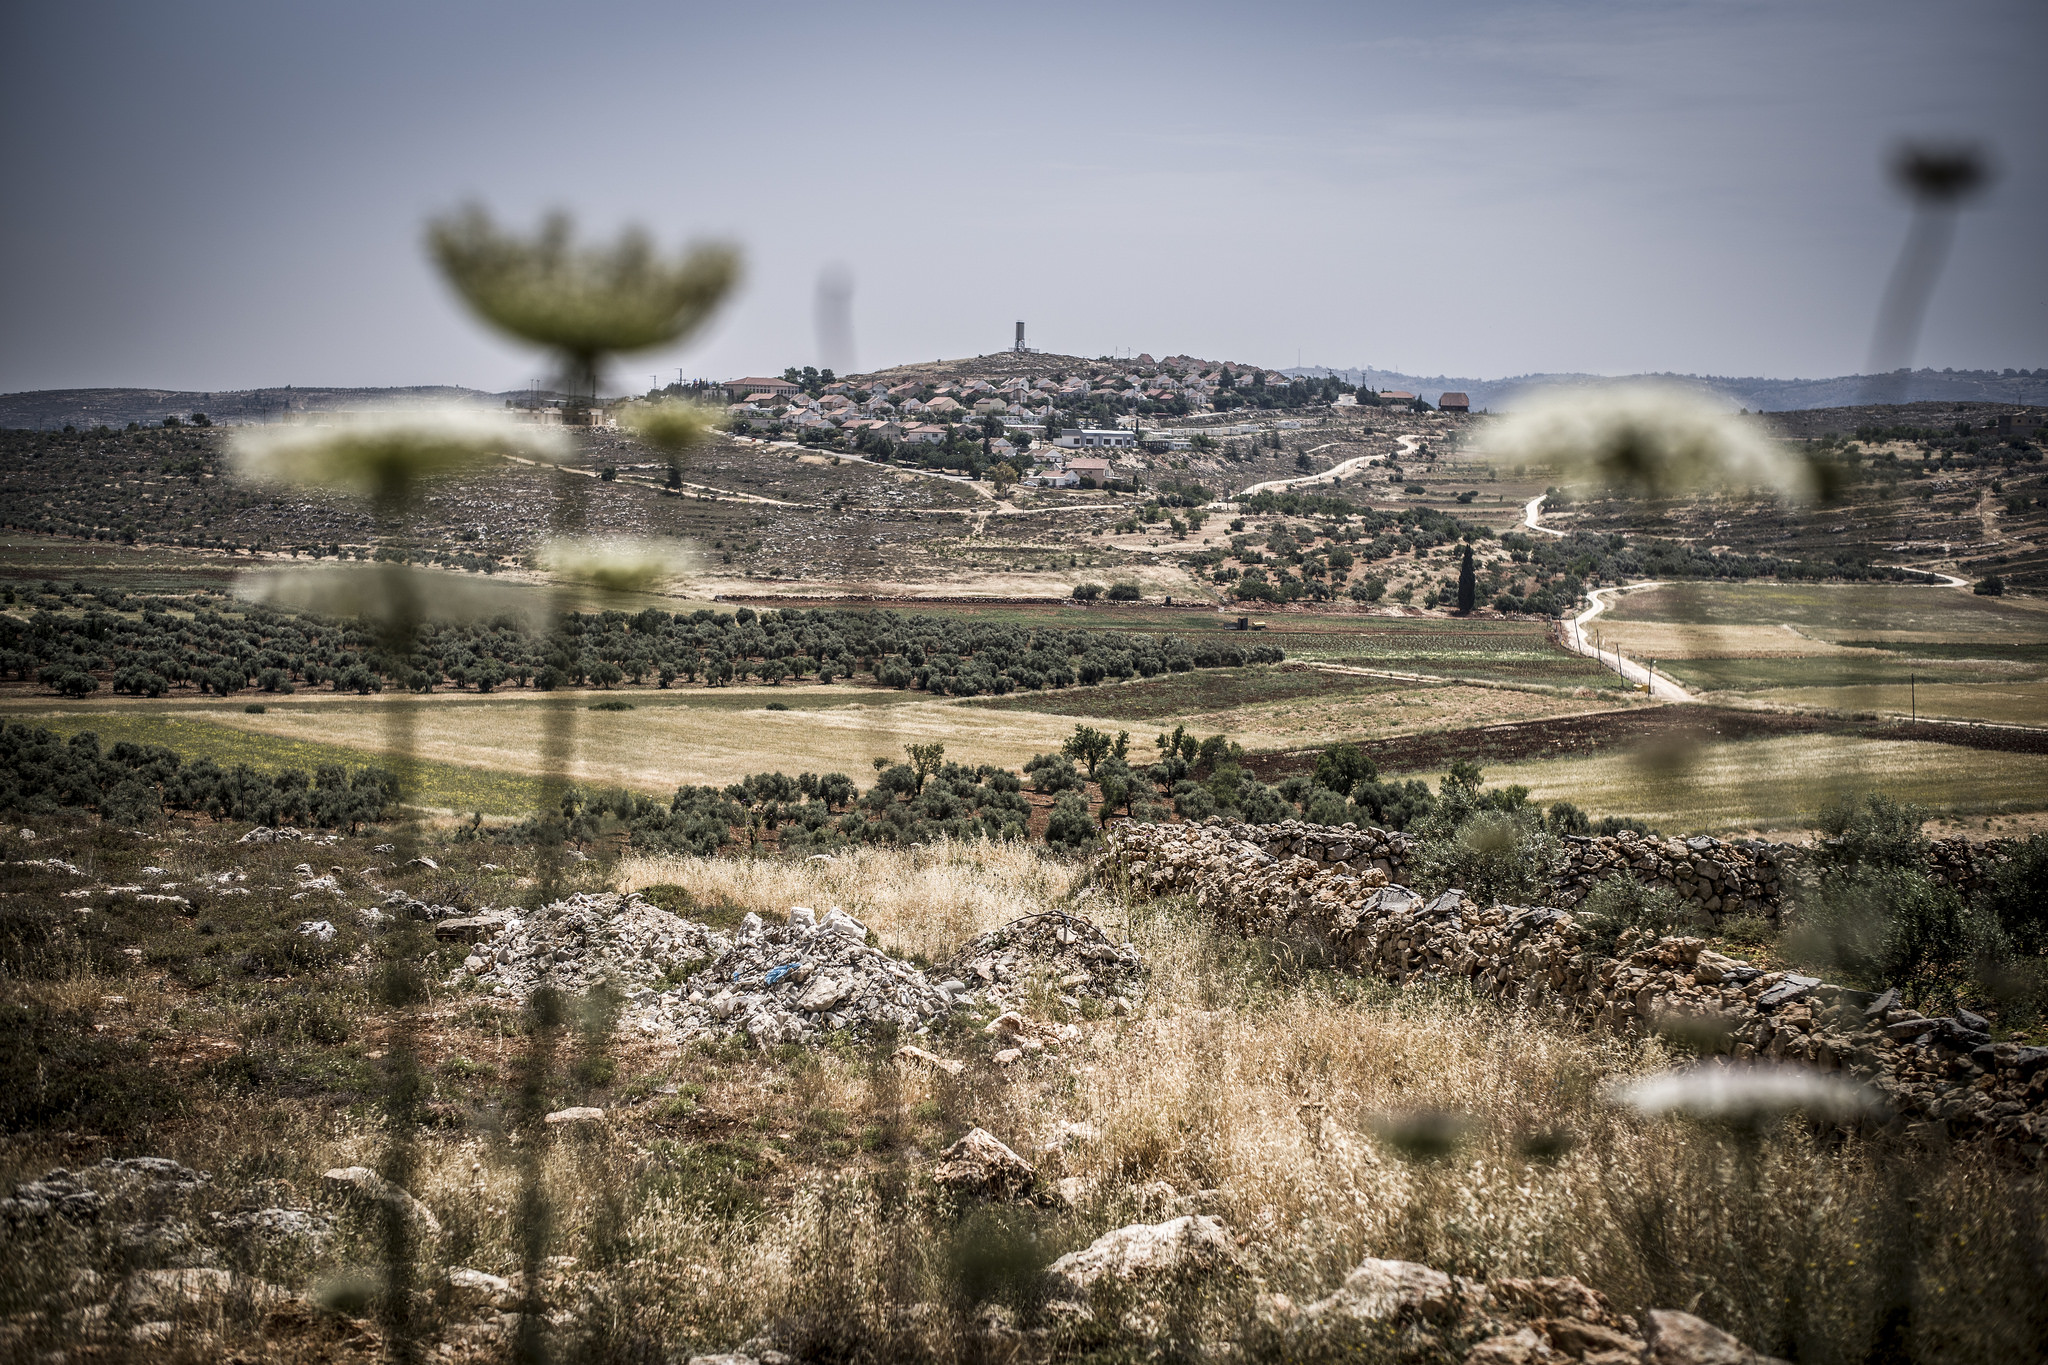 Mental health and psychosocial impacts of occupation-related violence in Palestine.